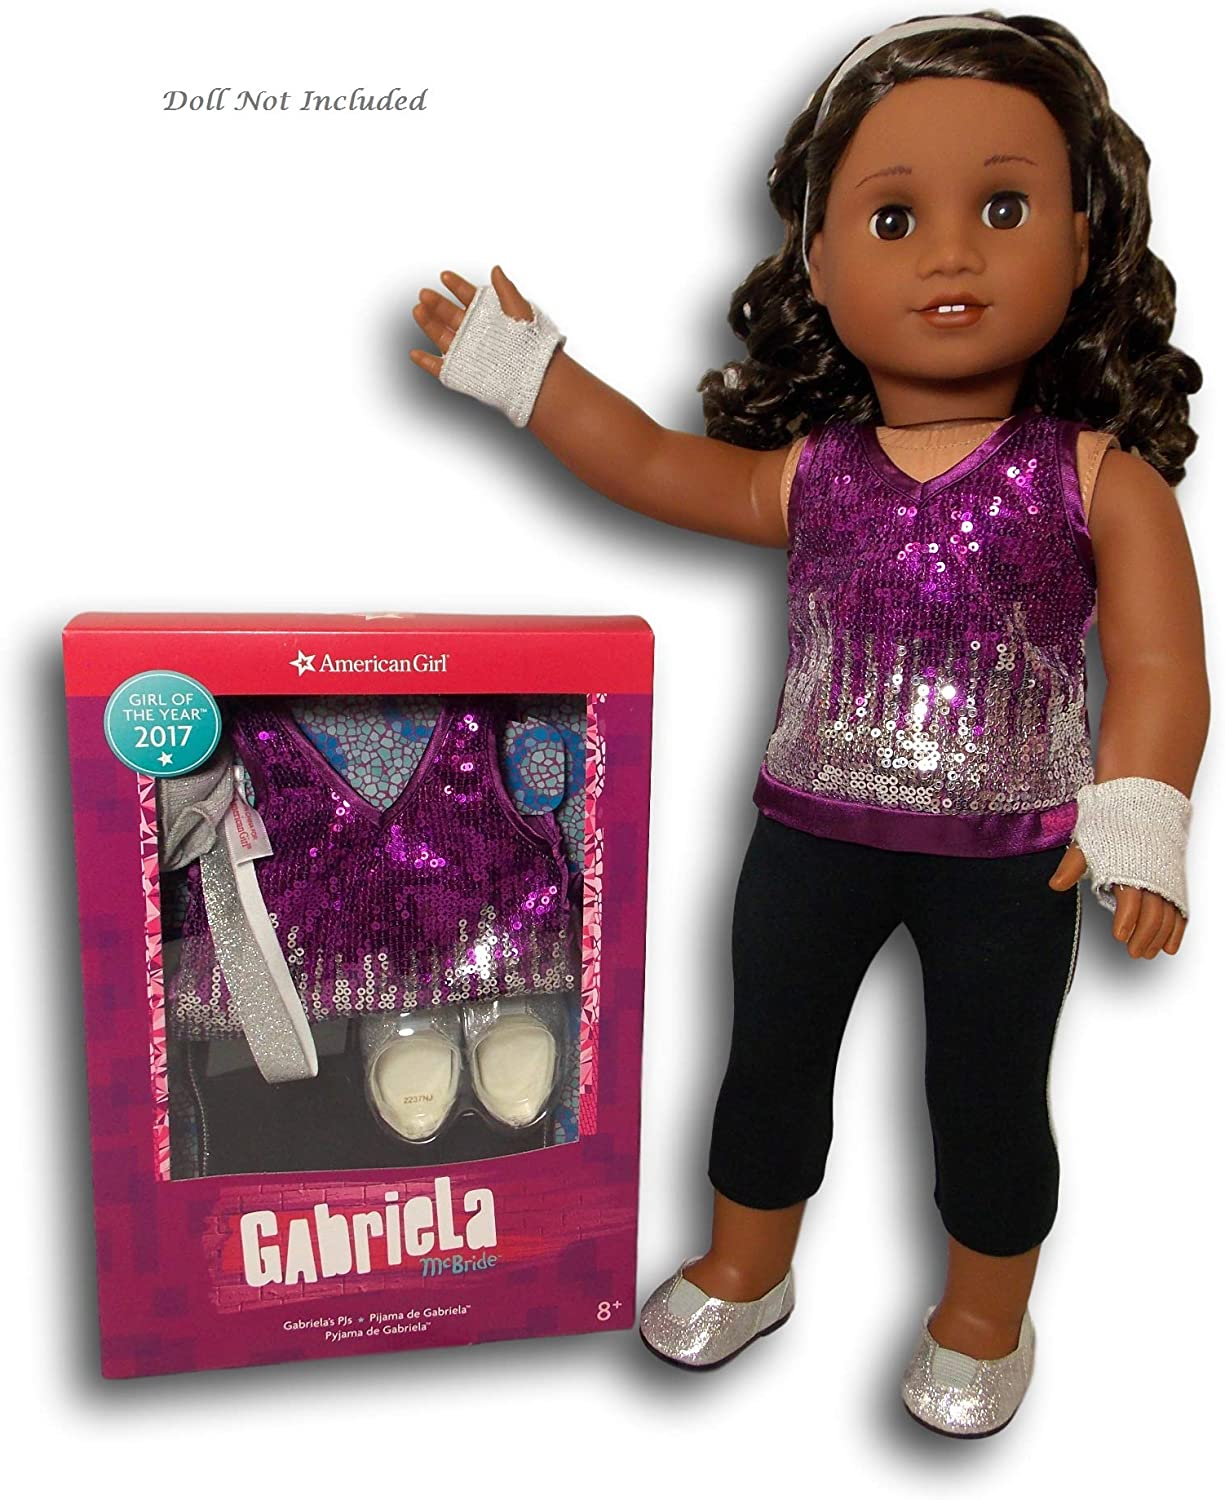 American Girl - Gabriela McBride - Gabriela's Sparkling Sequins Outfit for 18-inch Dolls of 2017